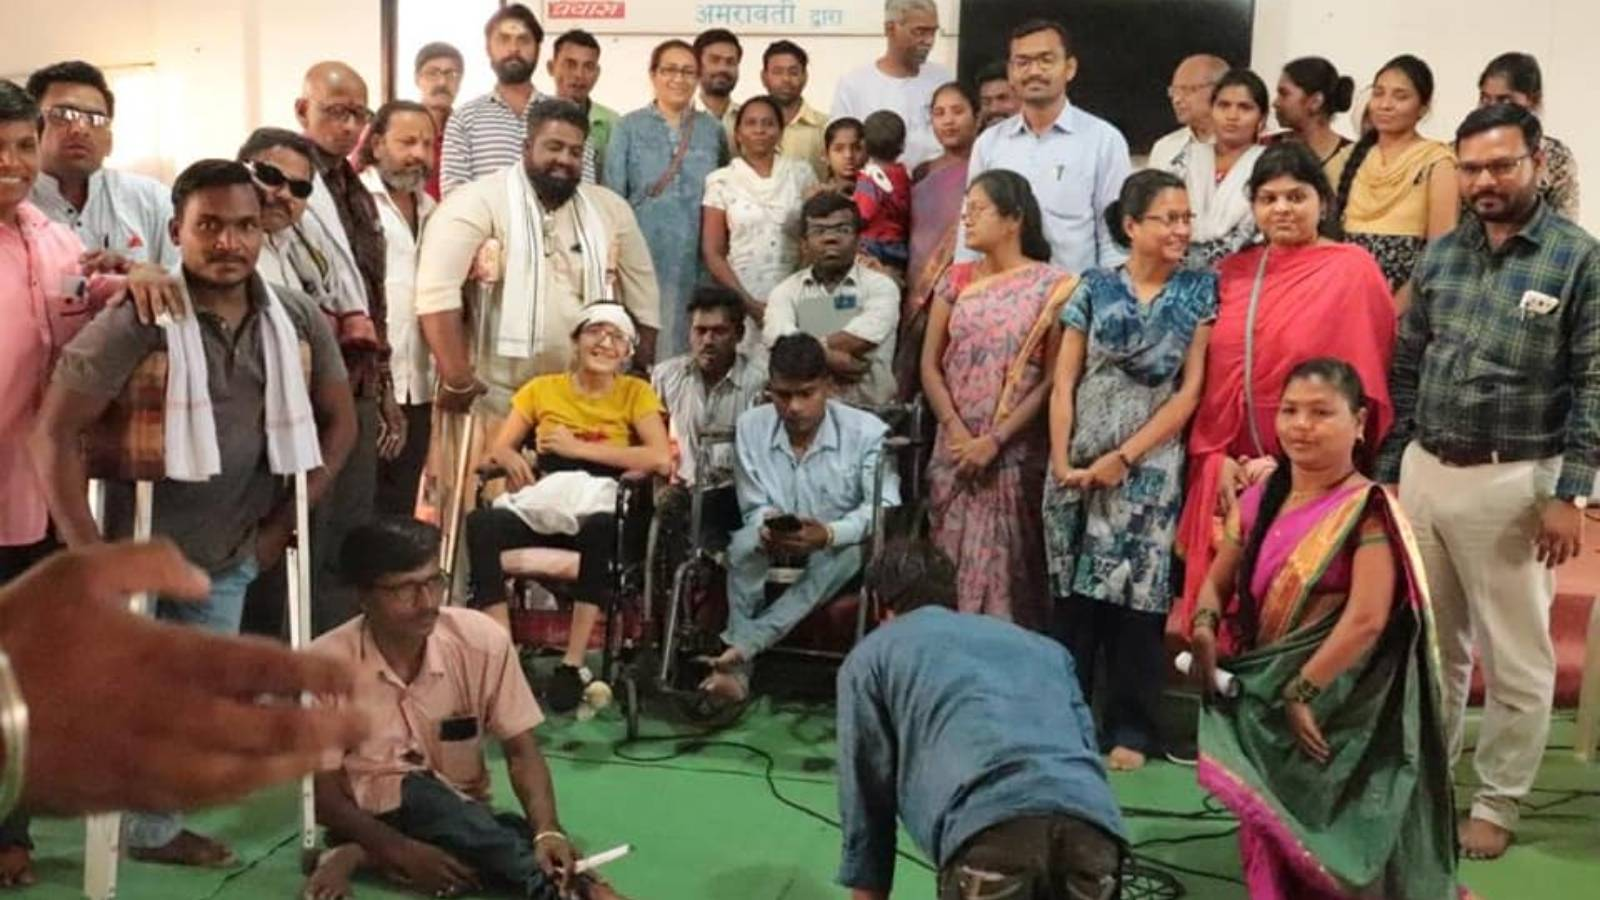 Life skill workshop for physically challenged